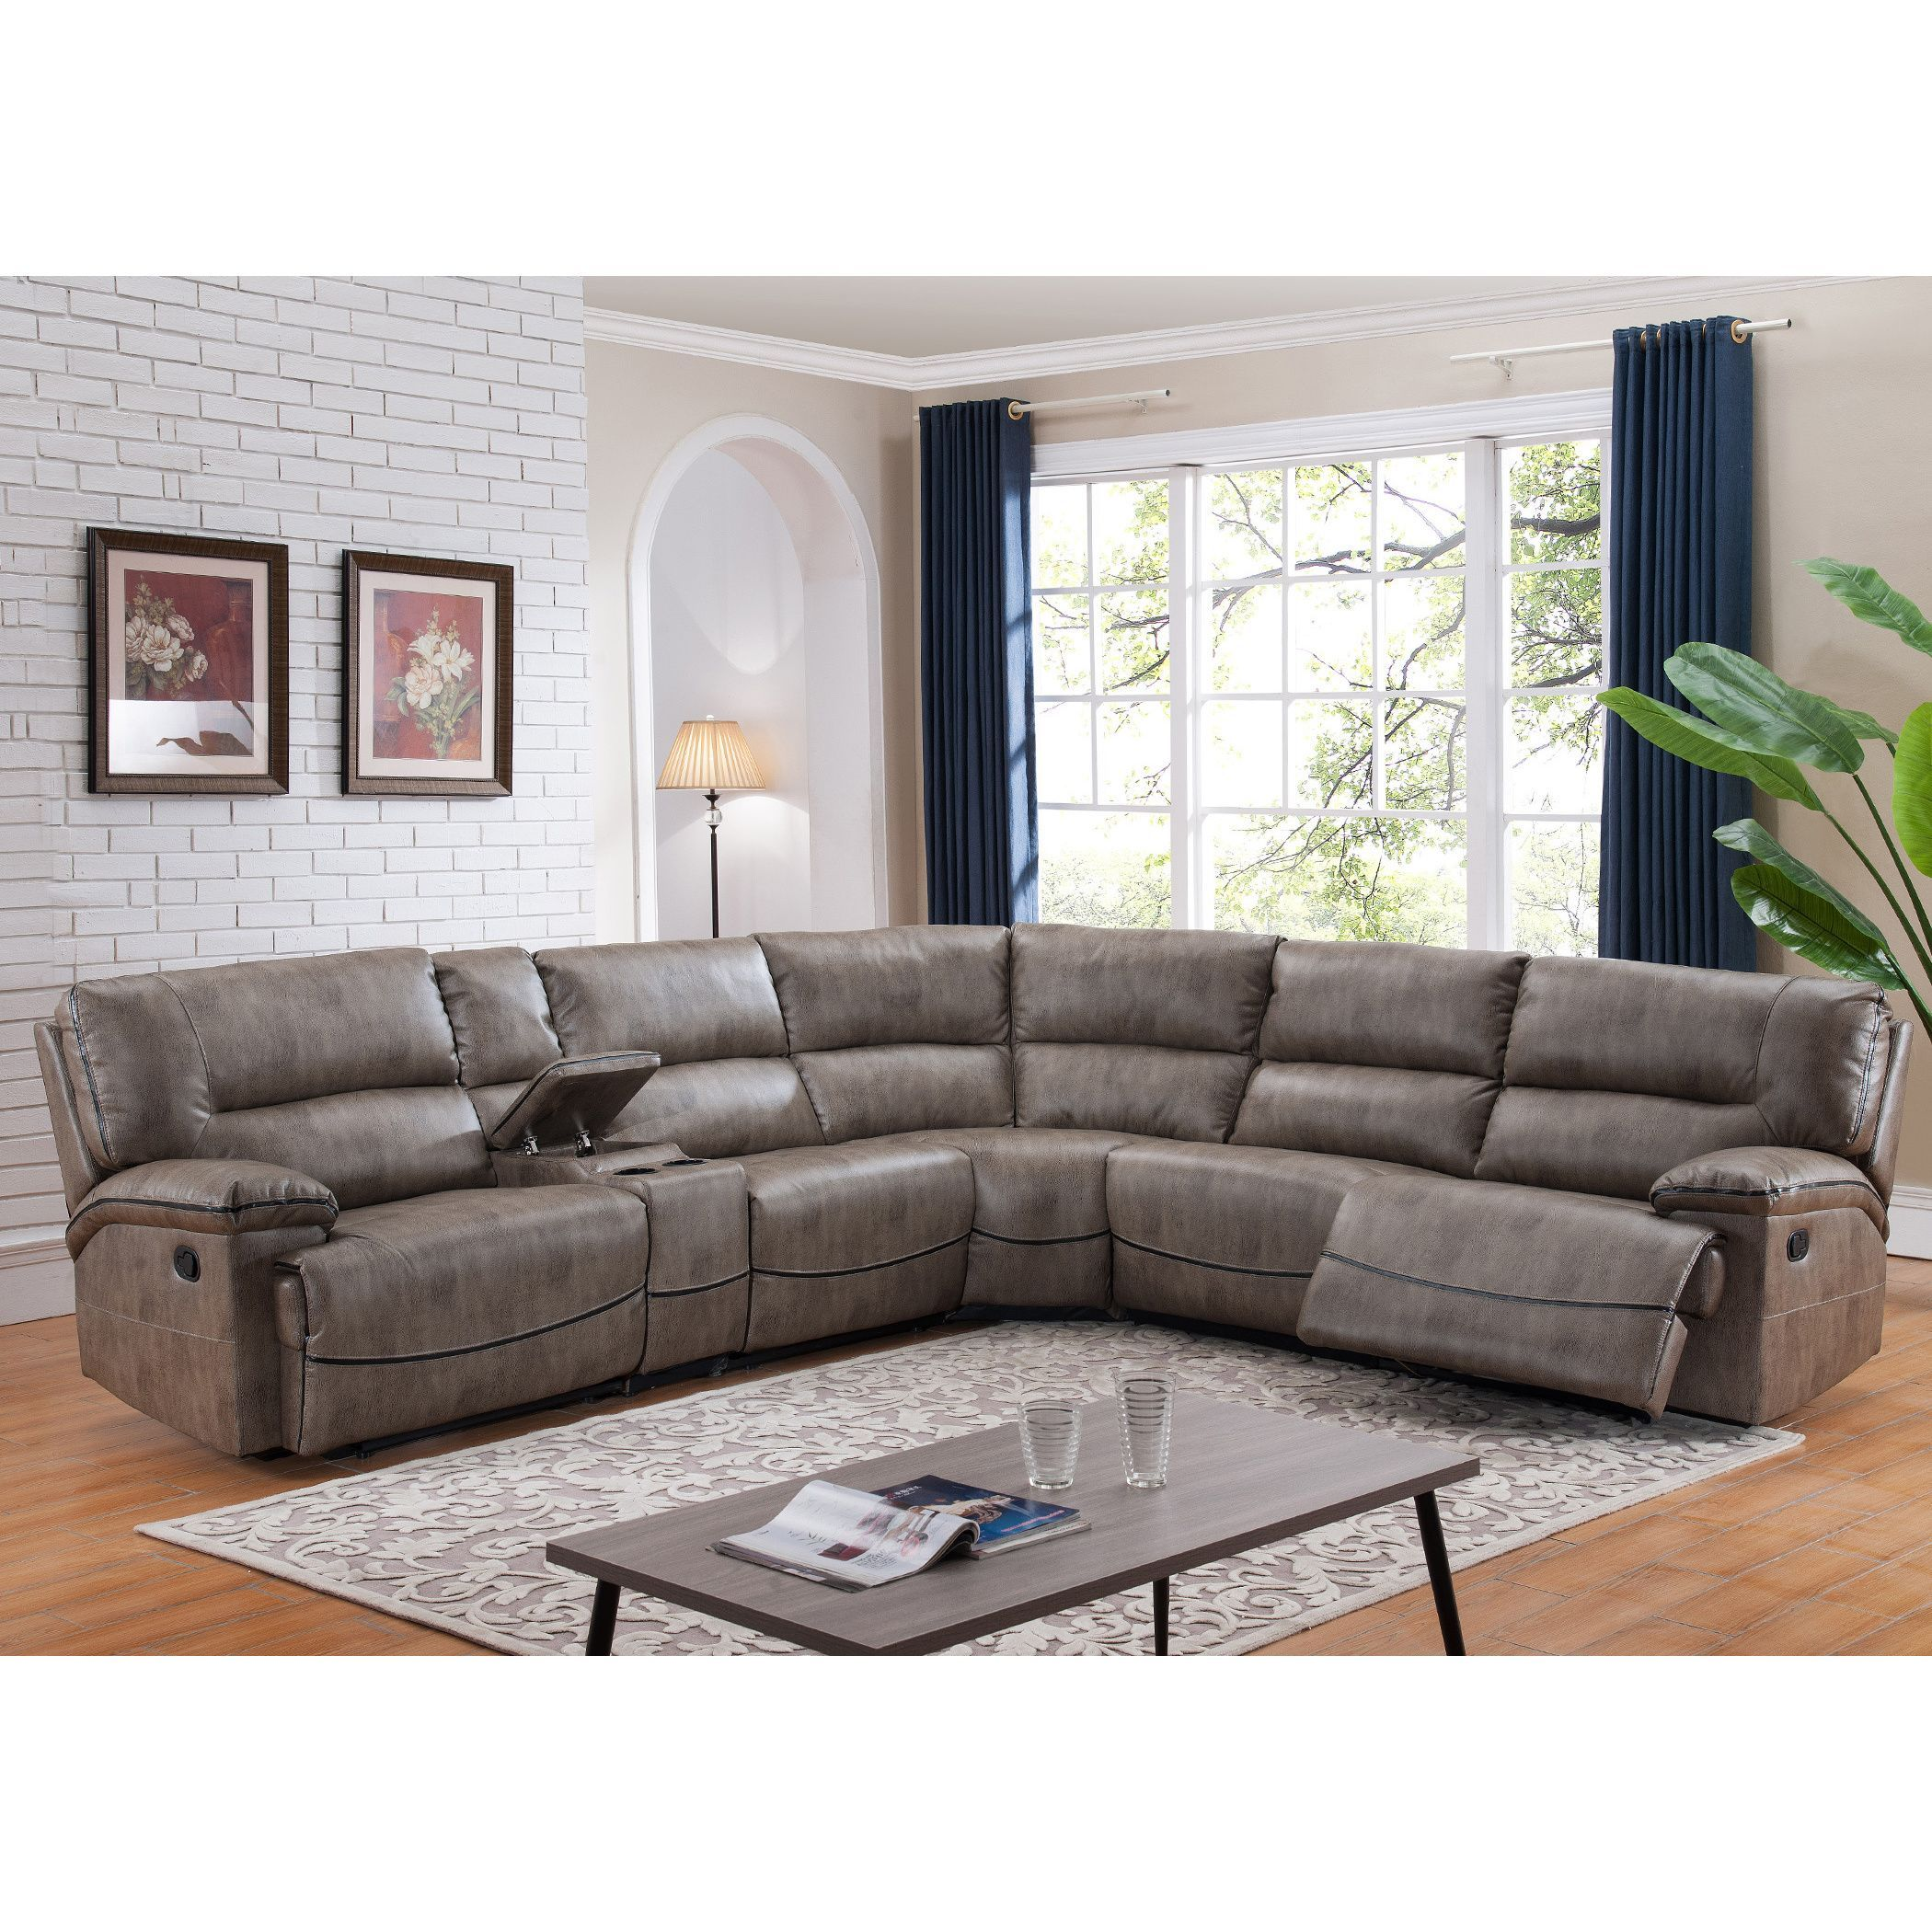 Living Room Furniture Catalina 6 Piece Power Reclining Sectional